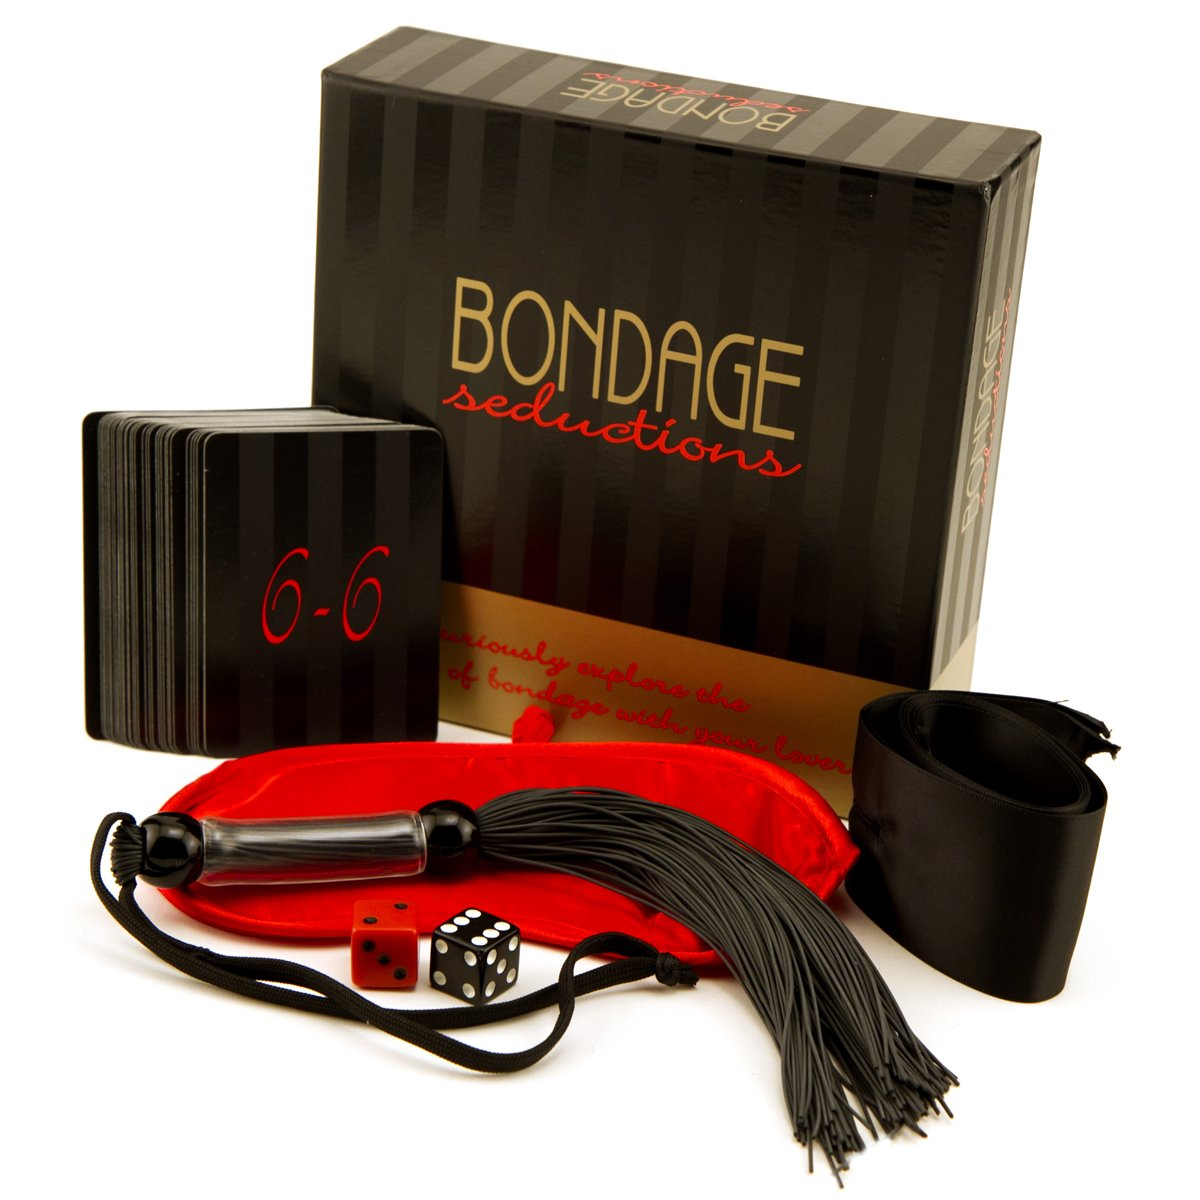 Bondage Seductions Game by Romantic Gifts